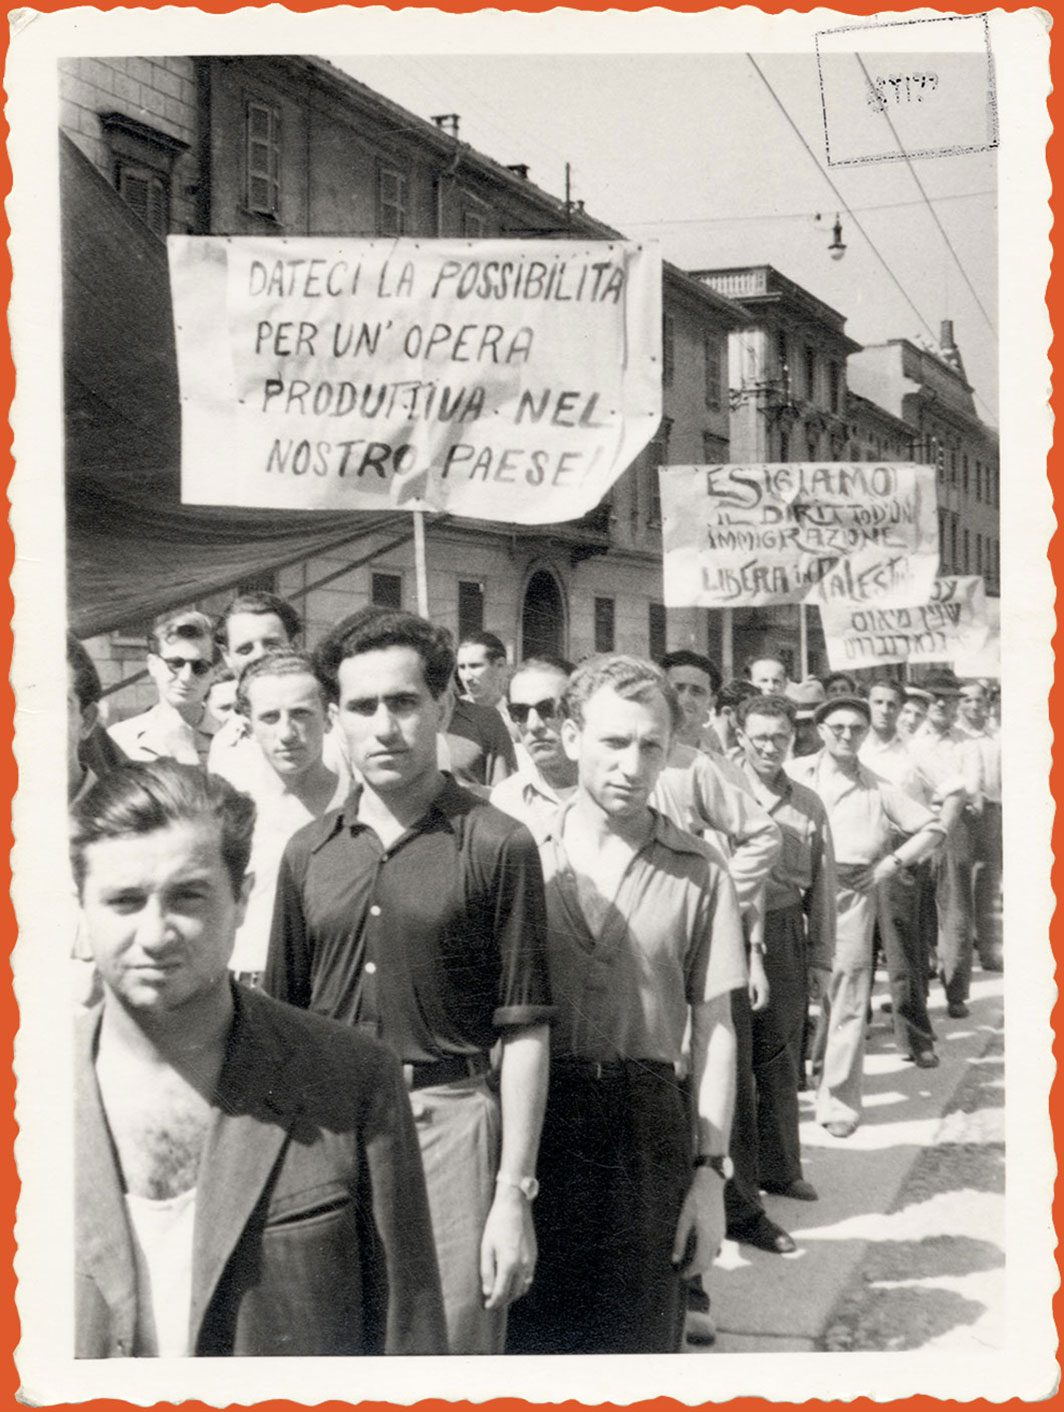 Photograph of demonstrators marching with signs